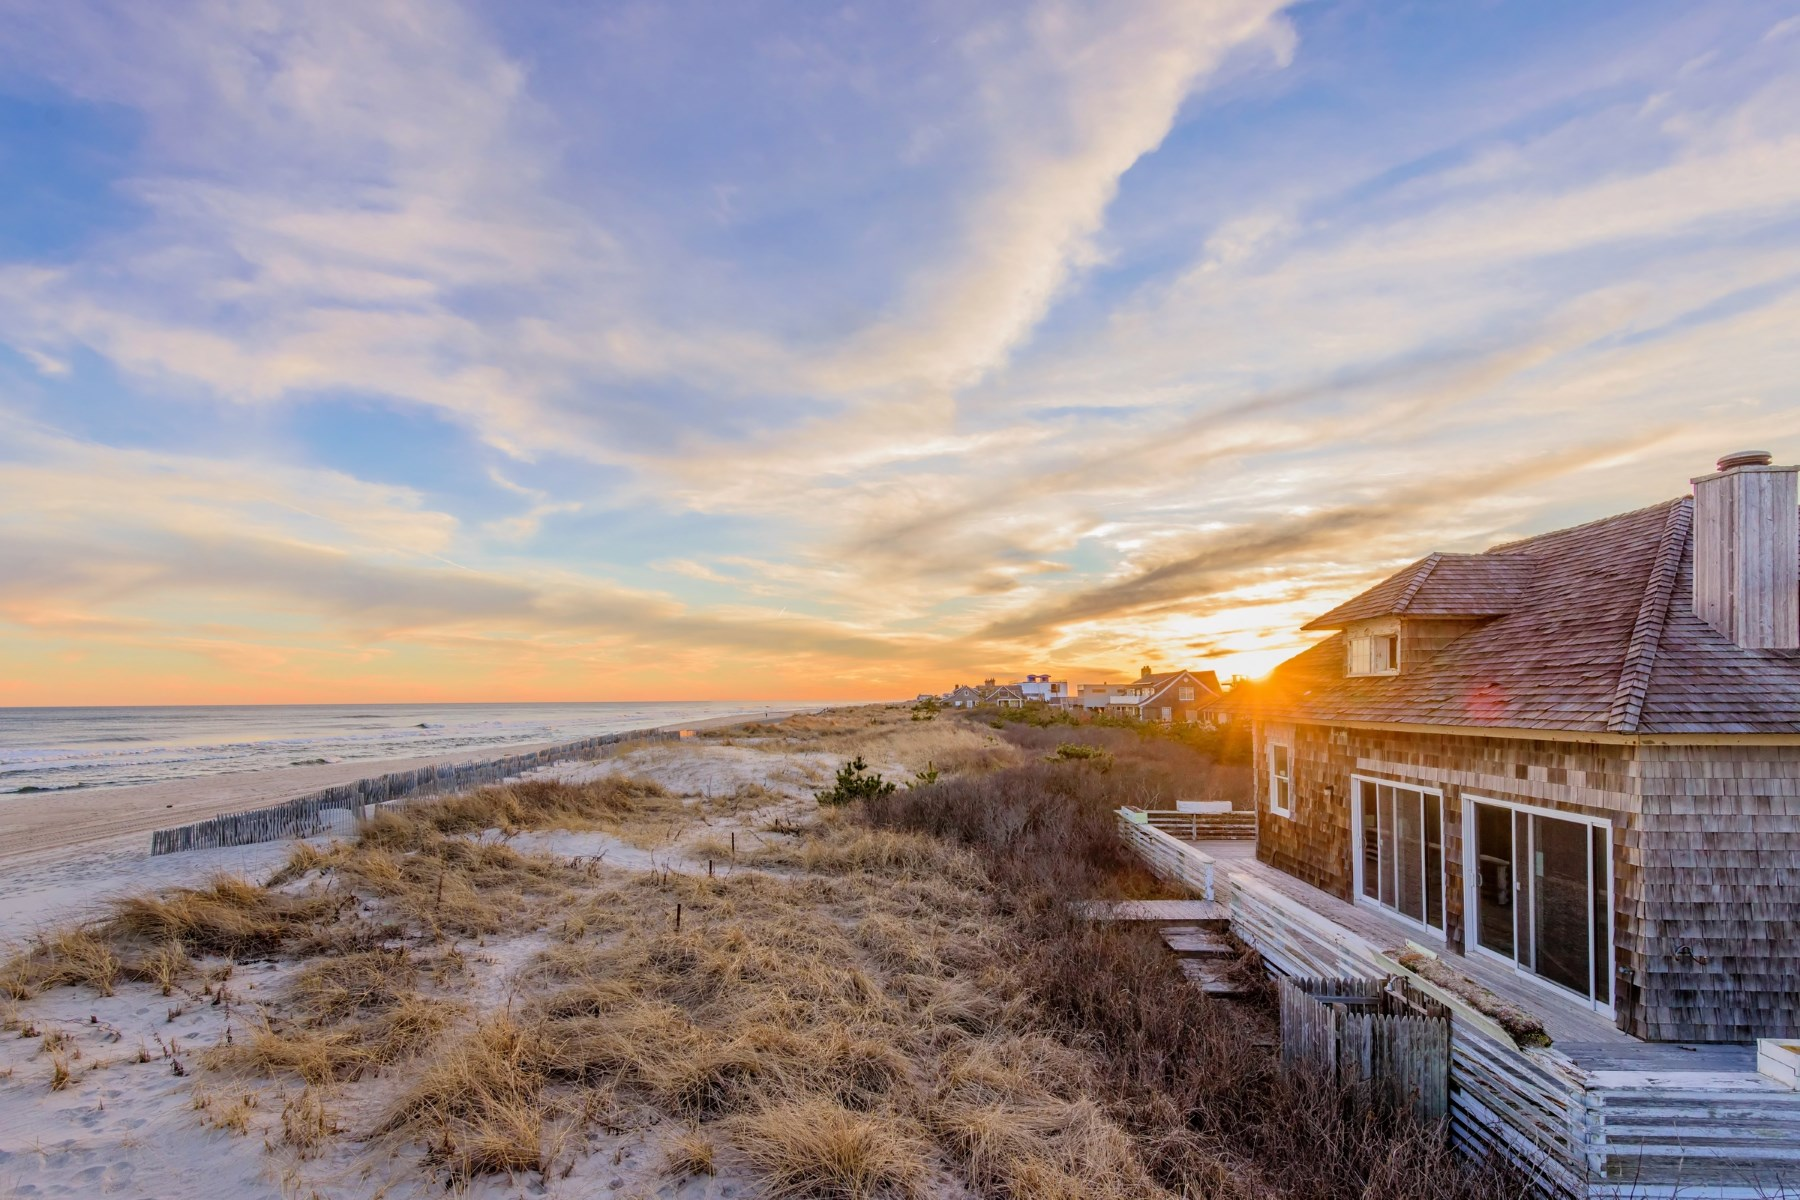 Maison unifamiliale pour l Vente à Premier Oceanfront on Coveted Dune Road 77 Dune Road Bridgehampton South, Bridgehampton, New York, 11932 États-Unis